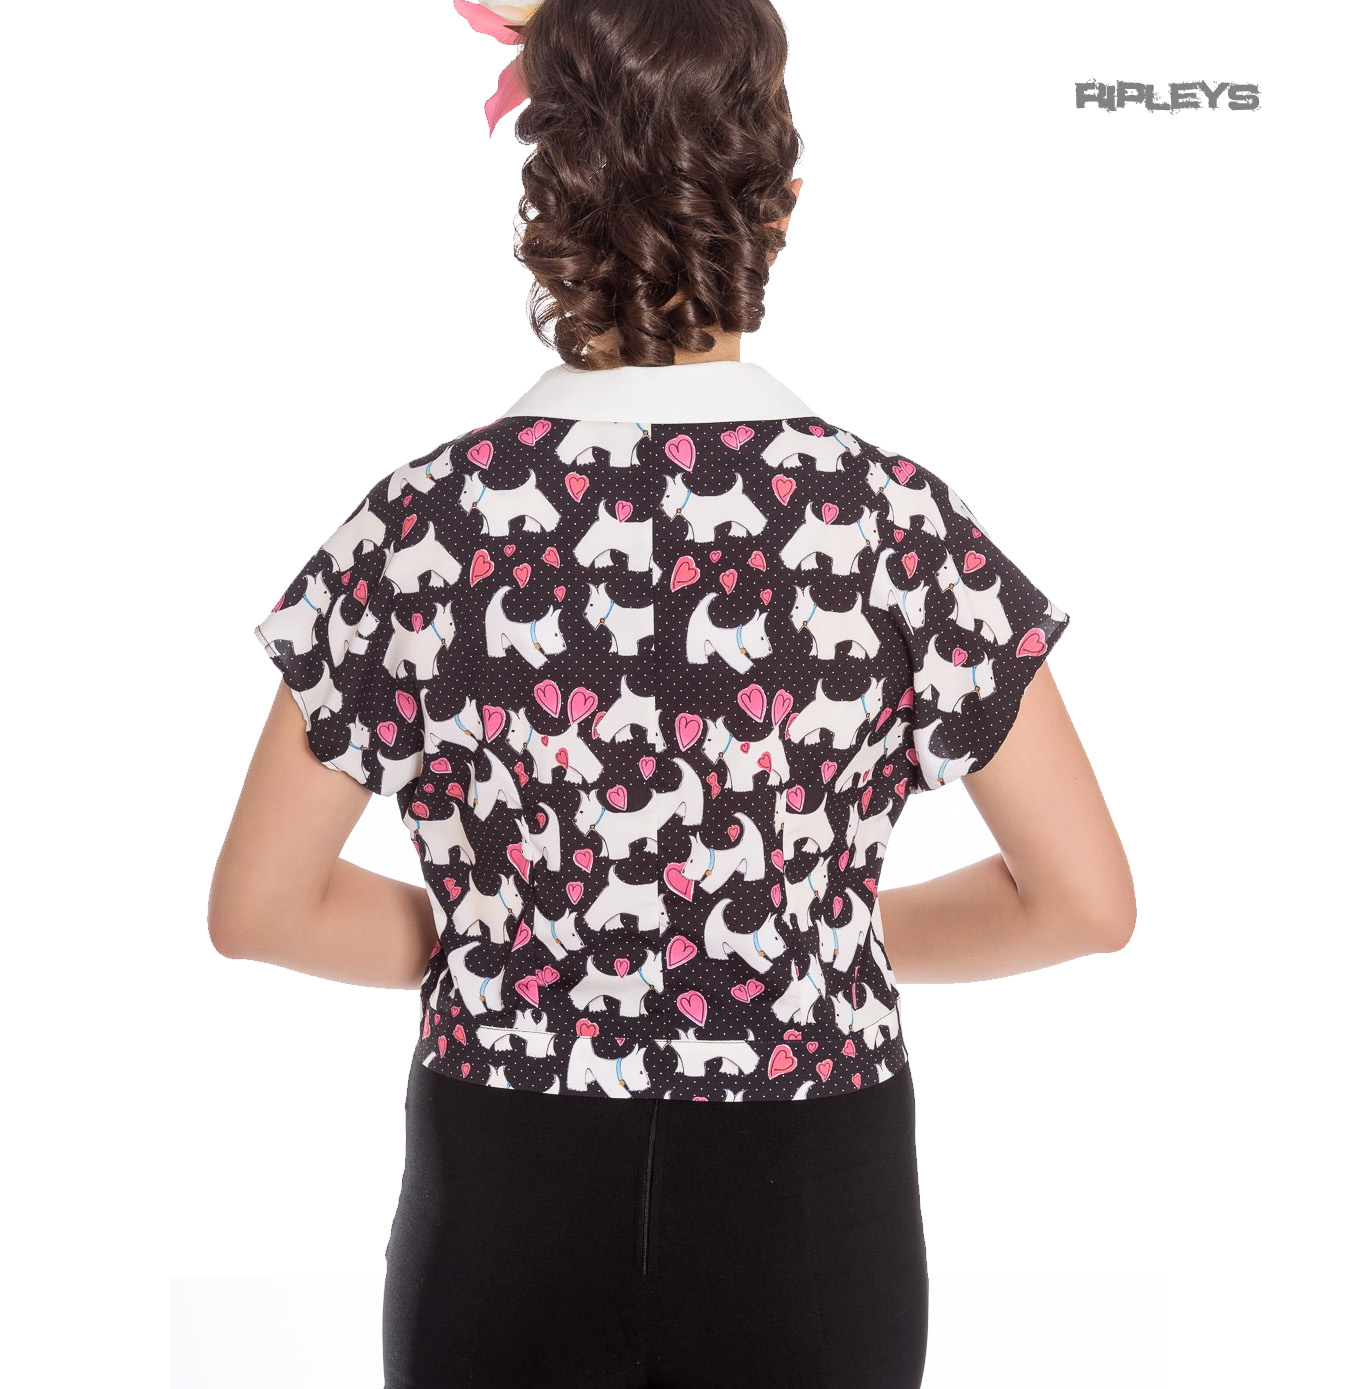 Hell-Bunny-50s-Retro-Top-Scottie-Dog-Heart-AGGY-Cropped-Blouse-Shirt-All-Sizes thumbnail 28